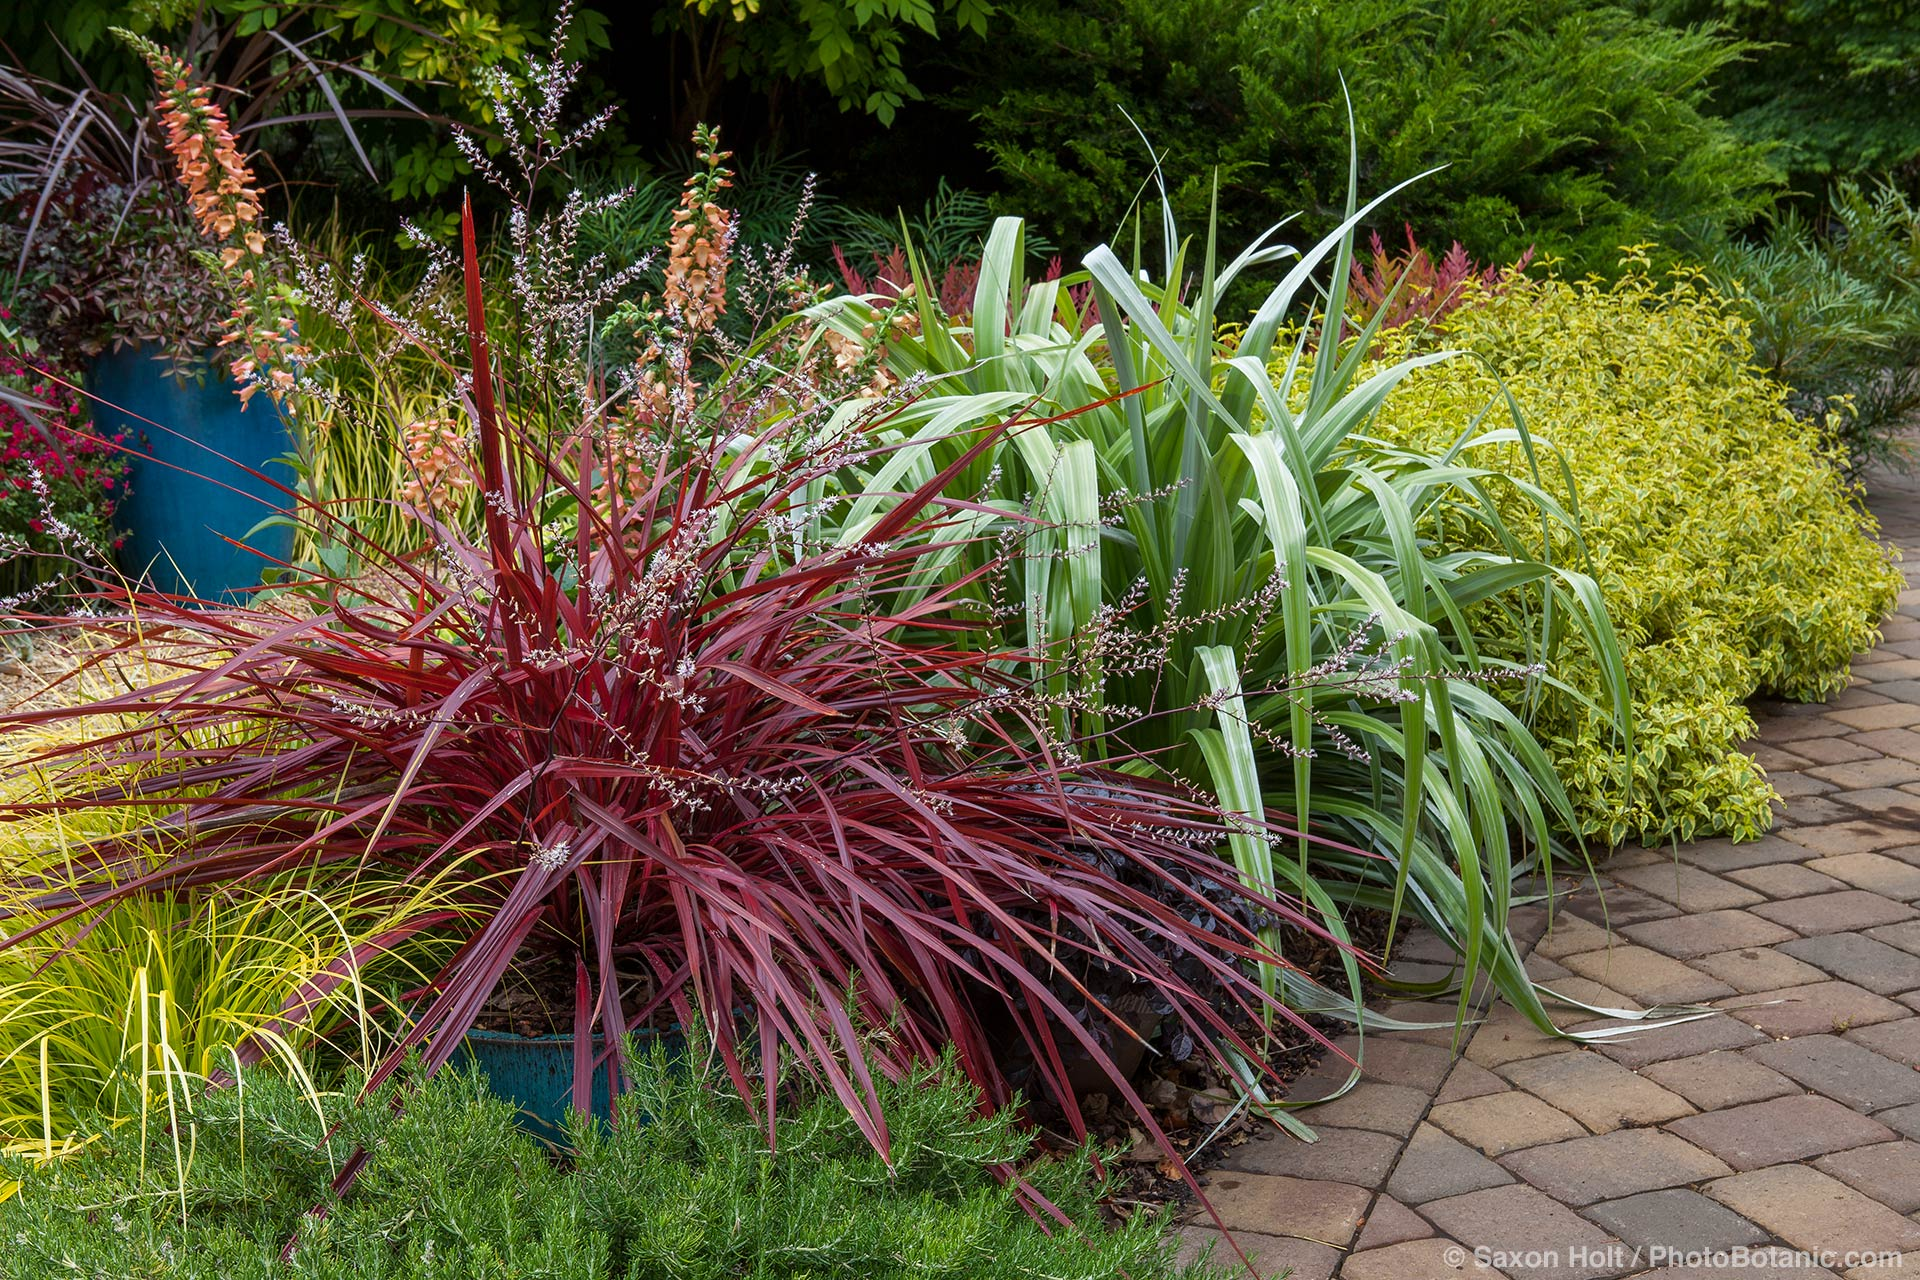 Cordyline 'Design-A-Line', red foliage perennial in garden border with Astelia 'Silver Shadow', Rosemary Chef's Choice, Digitalis Digiplexis® 'Apricot', and Cistus 'Little Miss Sunshine';  Sunset Plants